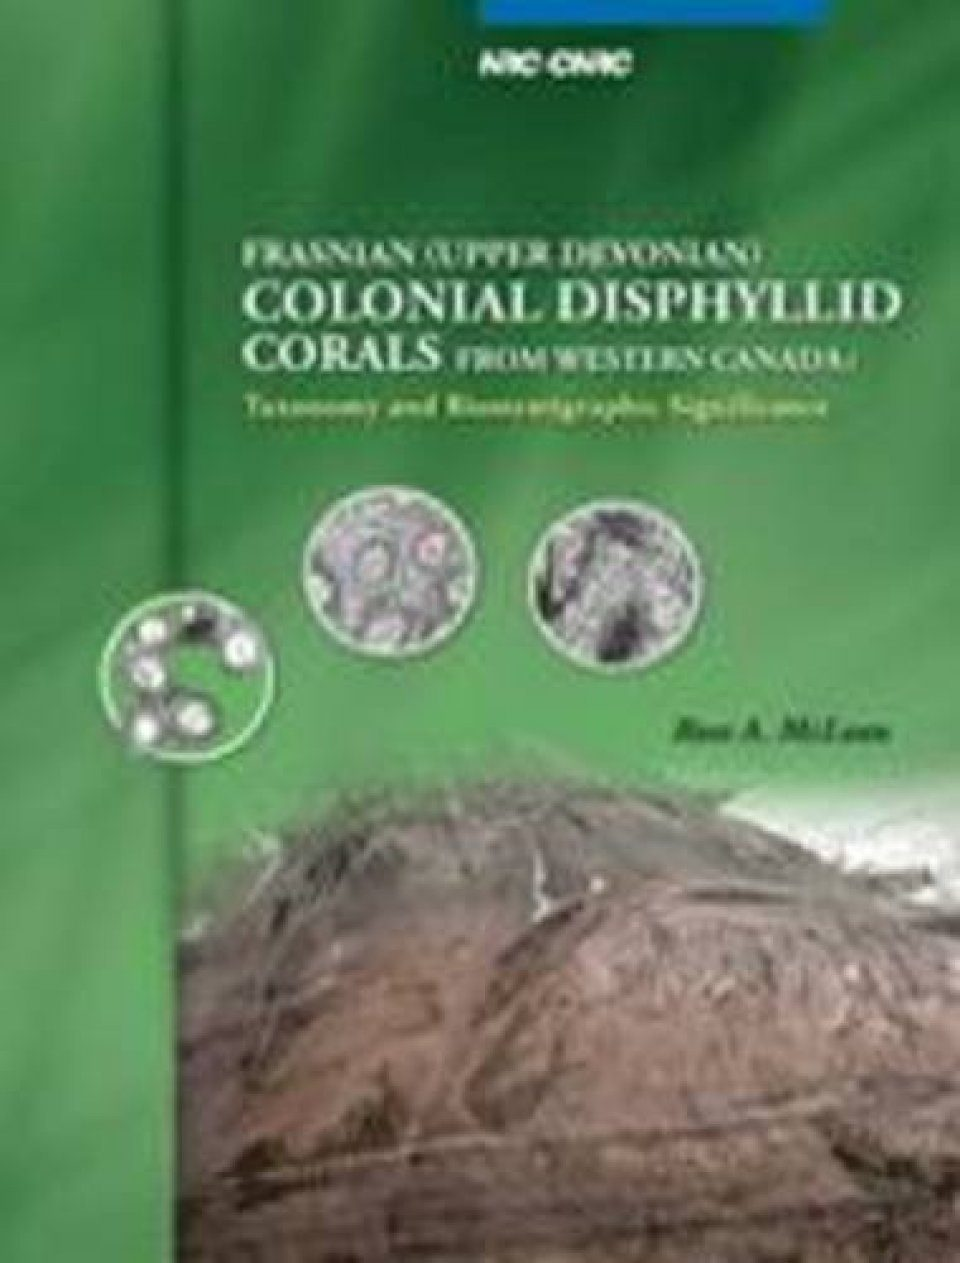 Frasnian (Upper Devonian) Colonial Disphyllid Corals from Western Canada